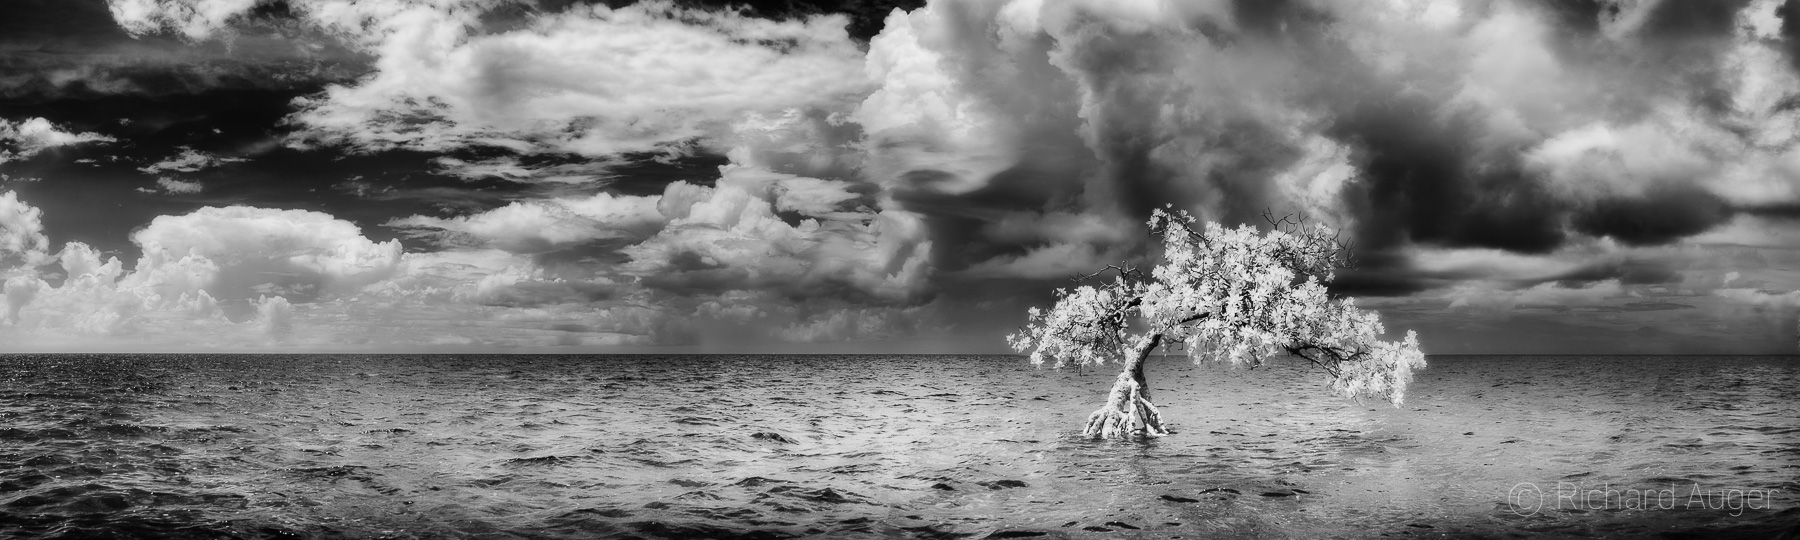 Long Mangrove State Park, Florida Keys, Storm, Moody, Sepia, Monochrome, light, photograph, photographer, water, landscape, black and white, panorama